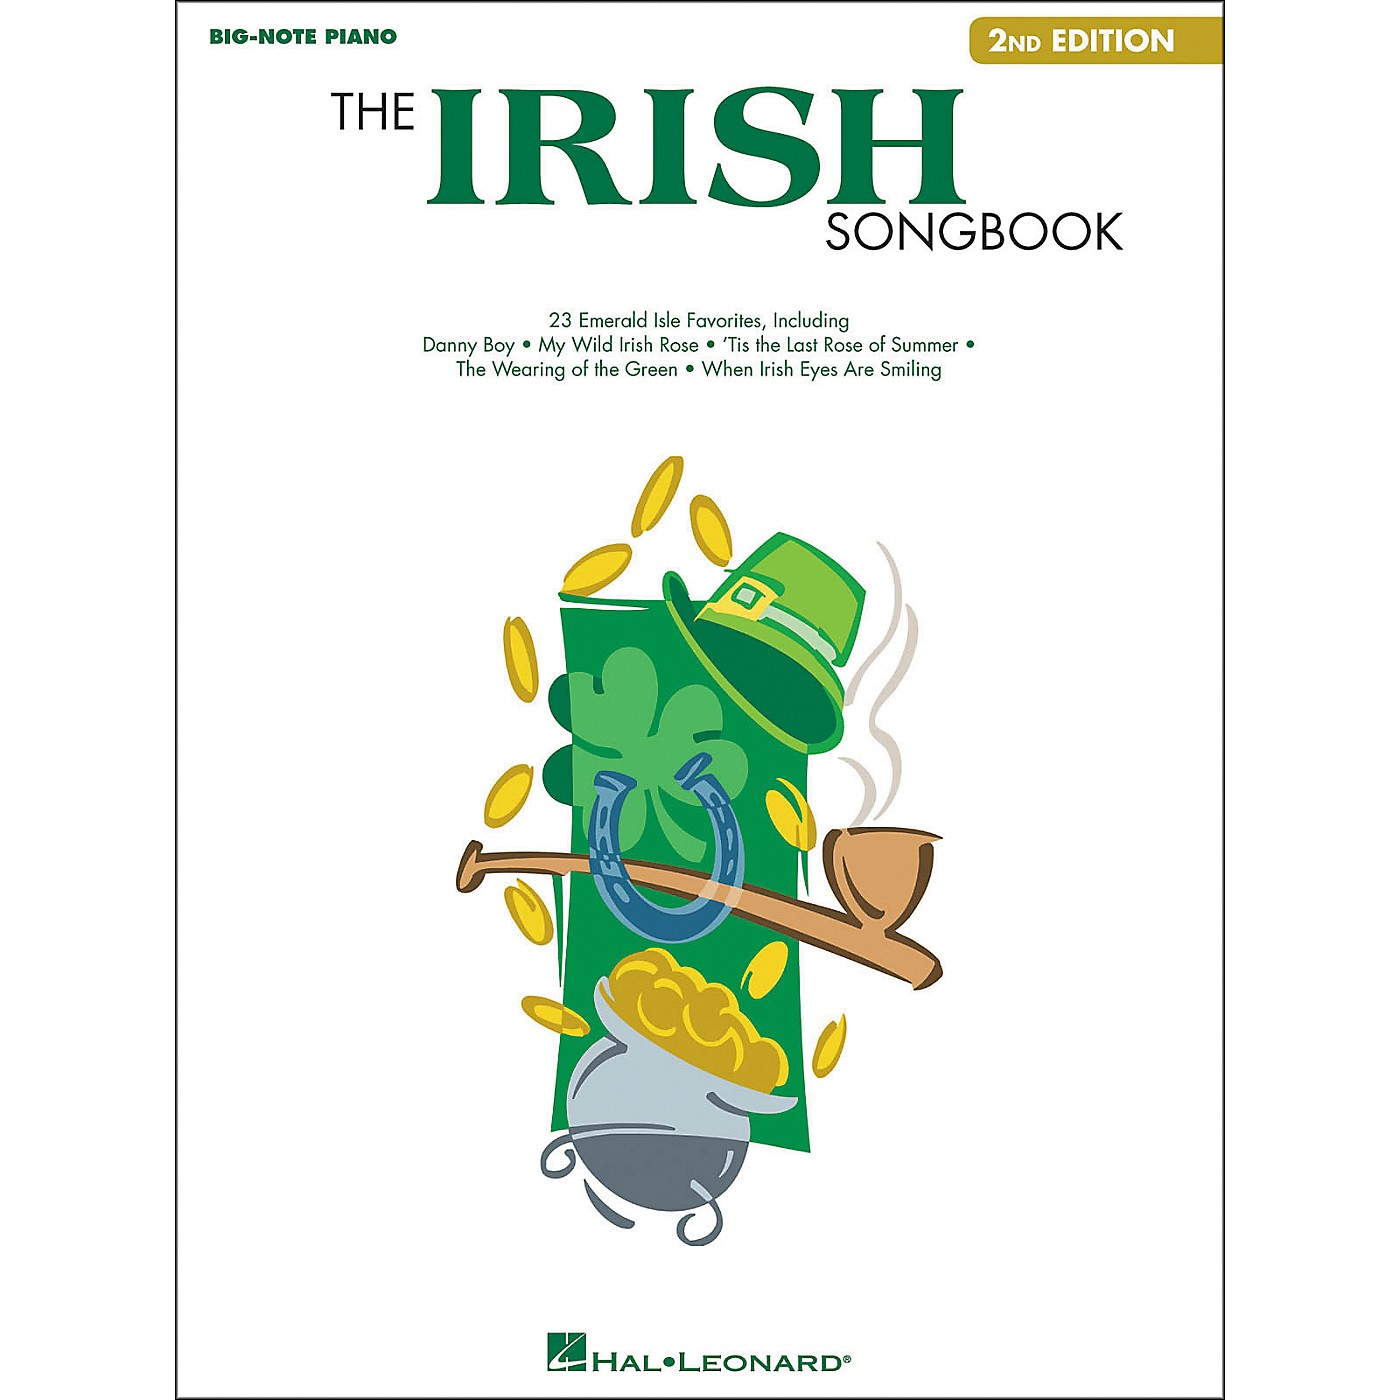 Hal Leonard The Irish Songbook - 2nd Edition for Big Note Piano thumbnail